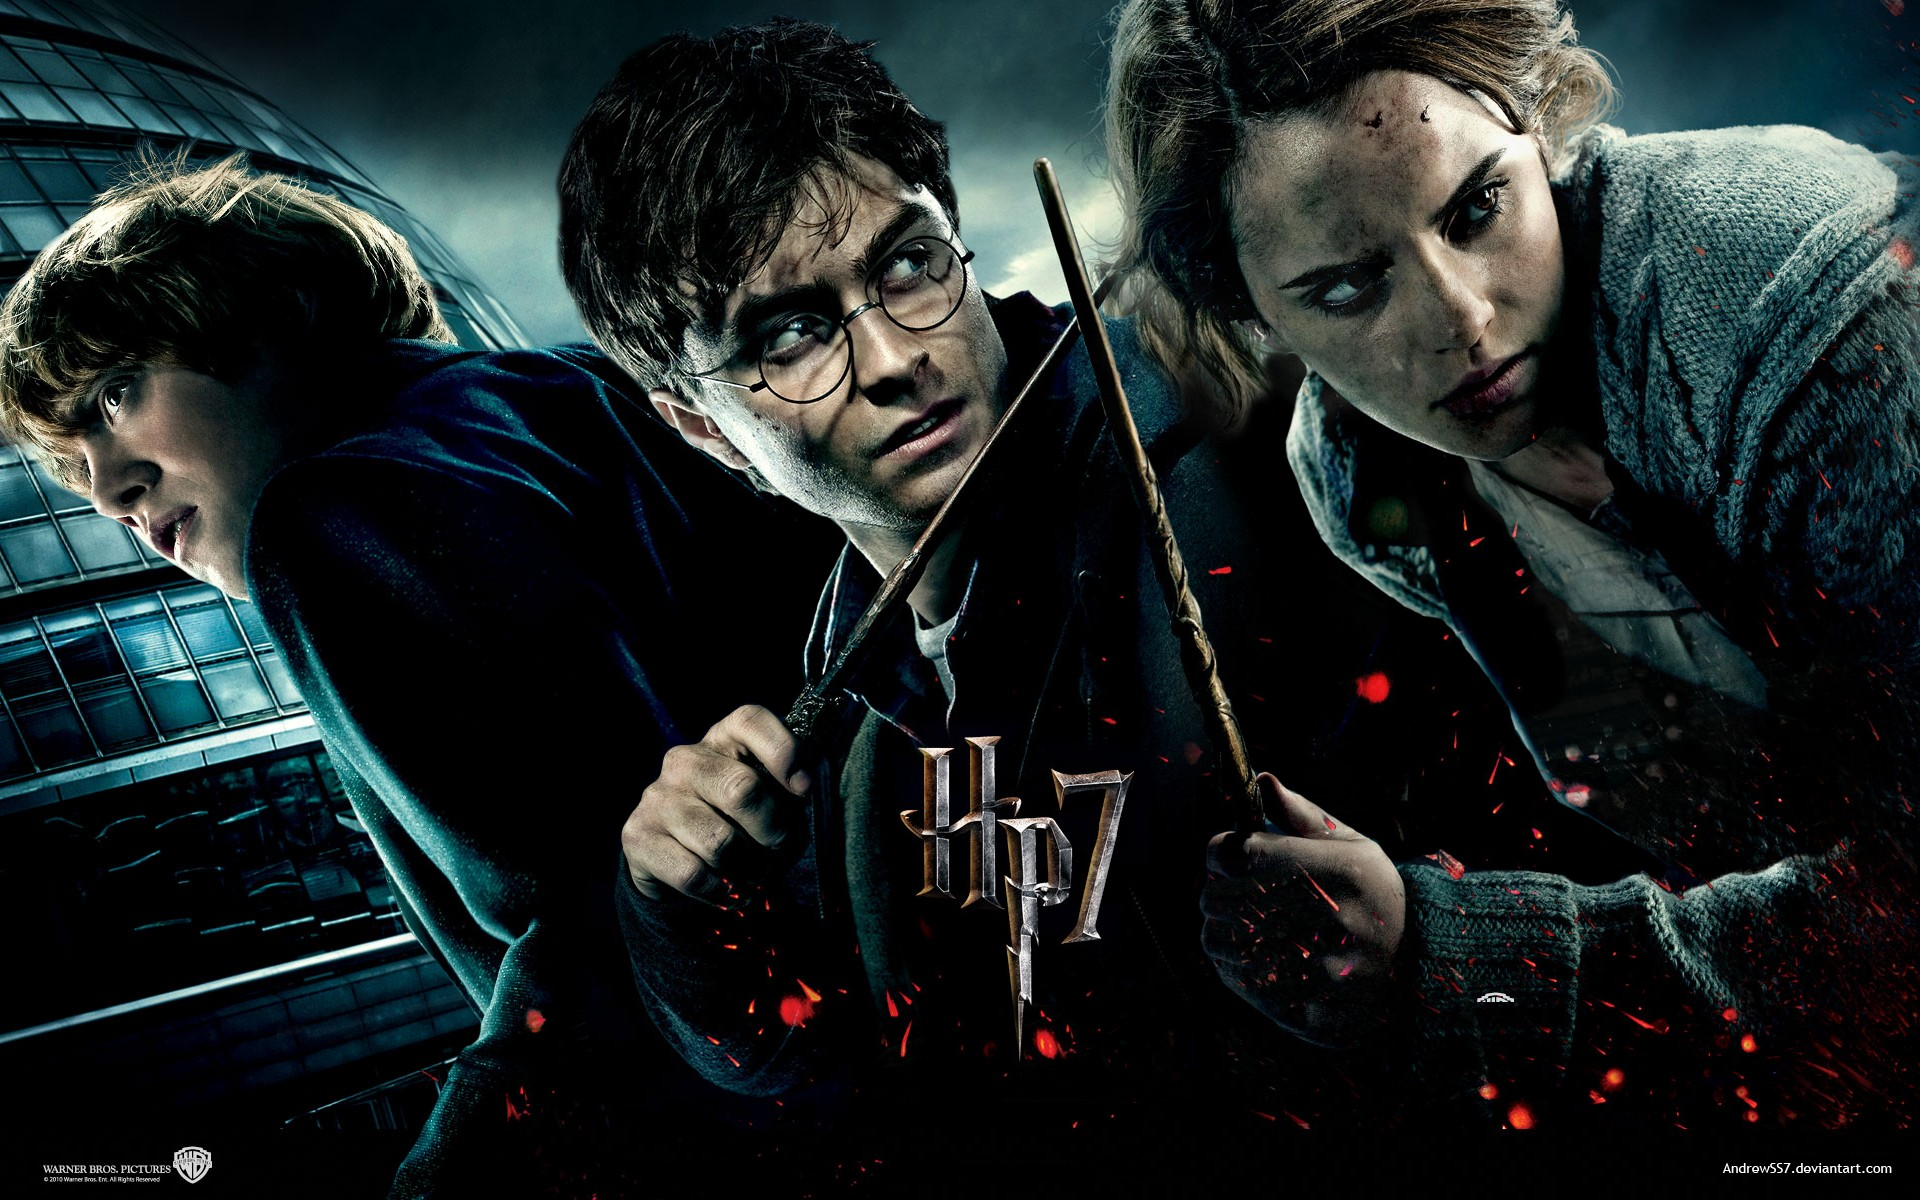 values hidden in harry potter Hidden dangers in harry potter [steve wohlberg] on amazoncom free shipping on qualifying offers billions of dollars have been poured into the harry potter phenomenon worldwide, yet so much more than money is at stake understand the dangers and deceptions behind this popular character enchanting millions of children with tales of.